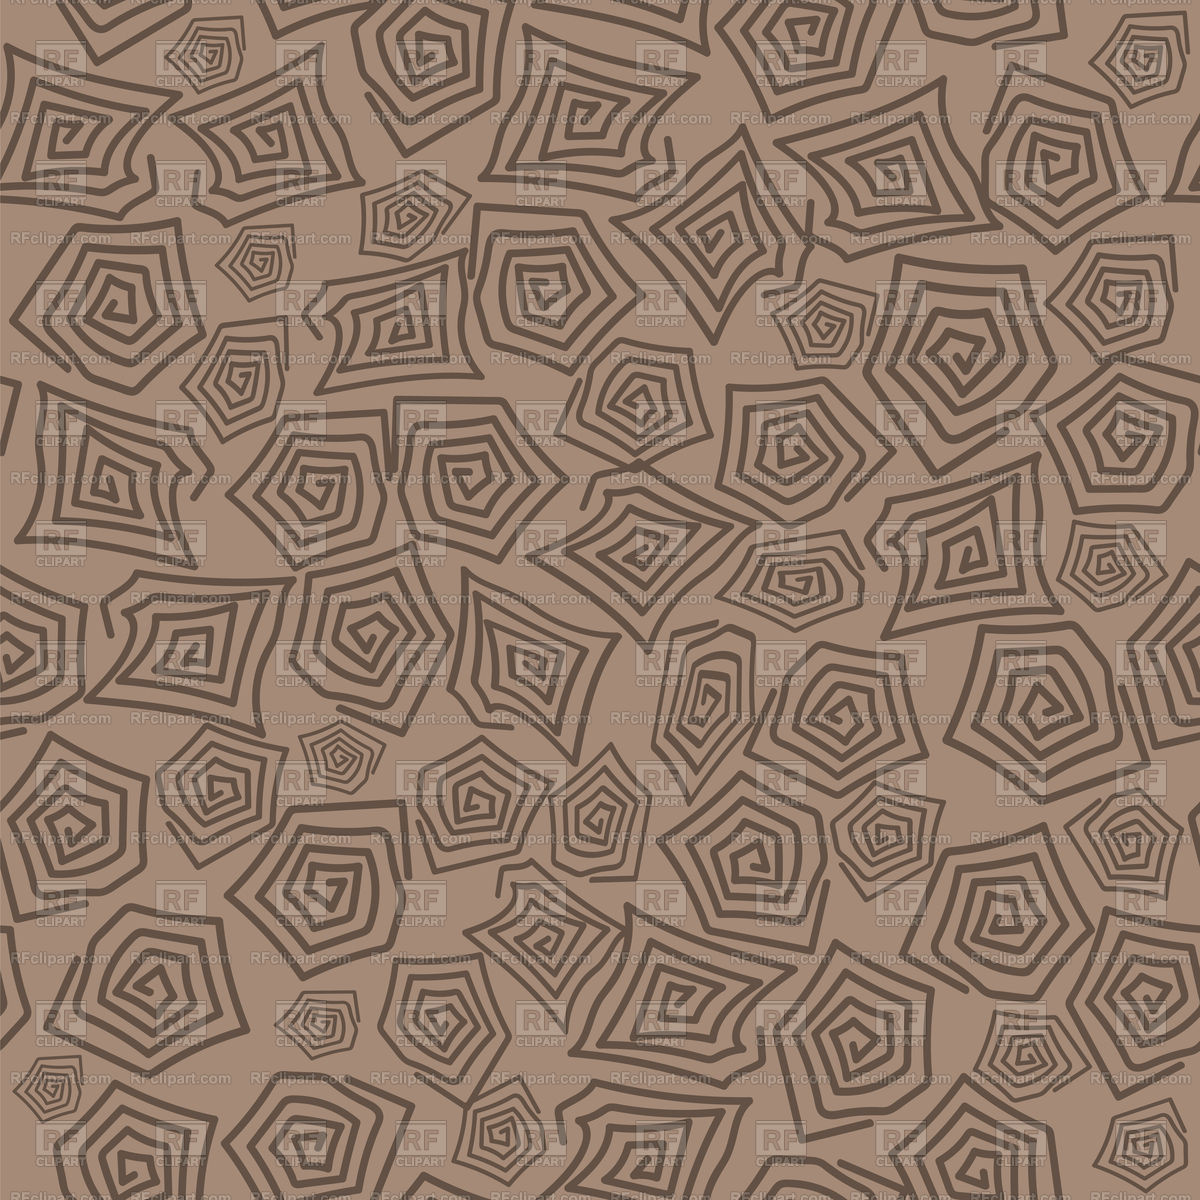 1200x1200 Turtle Shell Seamless Pattern On Brown Background Vector Image